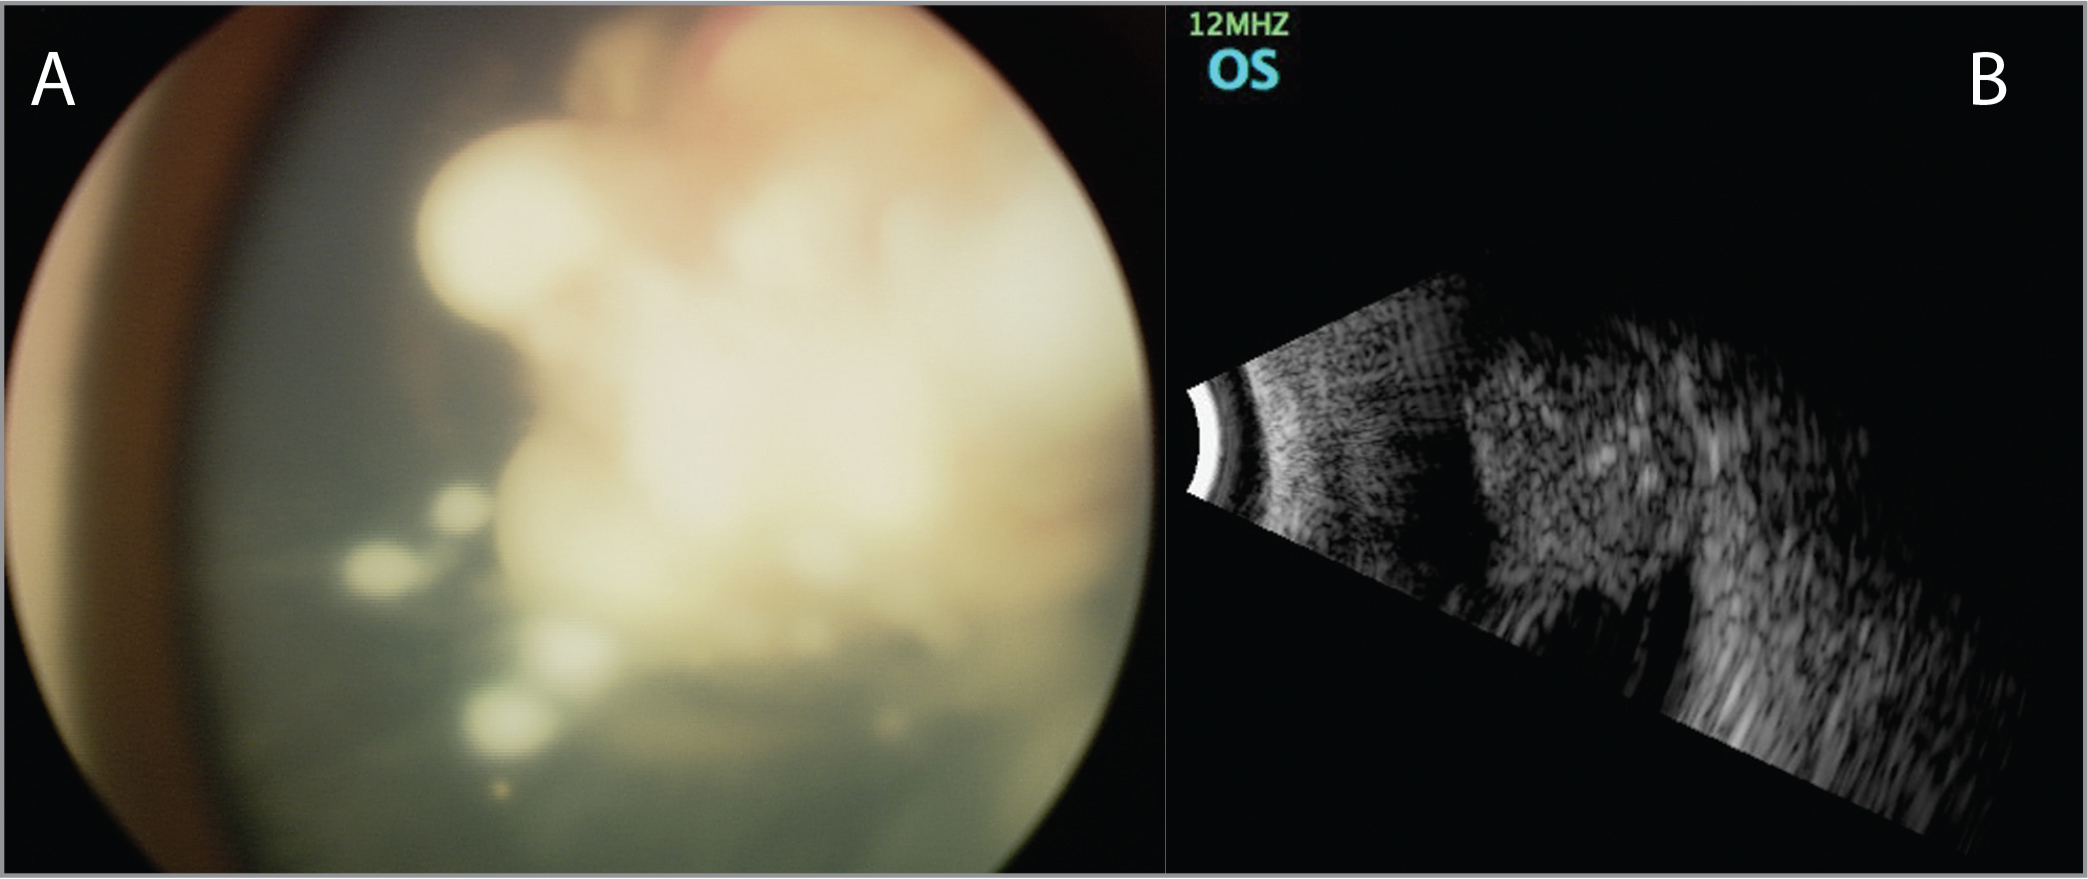 (A) Large, predominantly endophytic tumor in the left eye. (B) Ultrasound demonstrated homogenous hyperechoic mass and few calcifications.